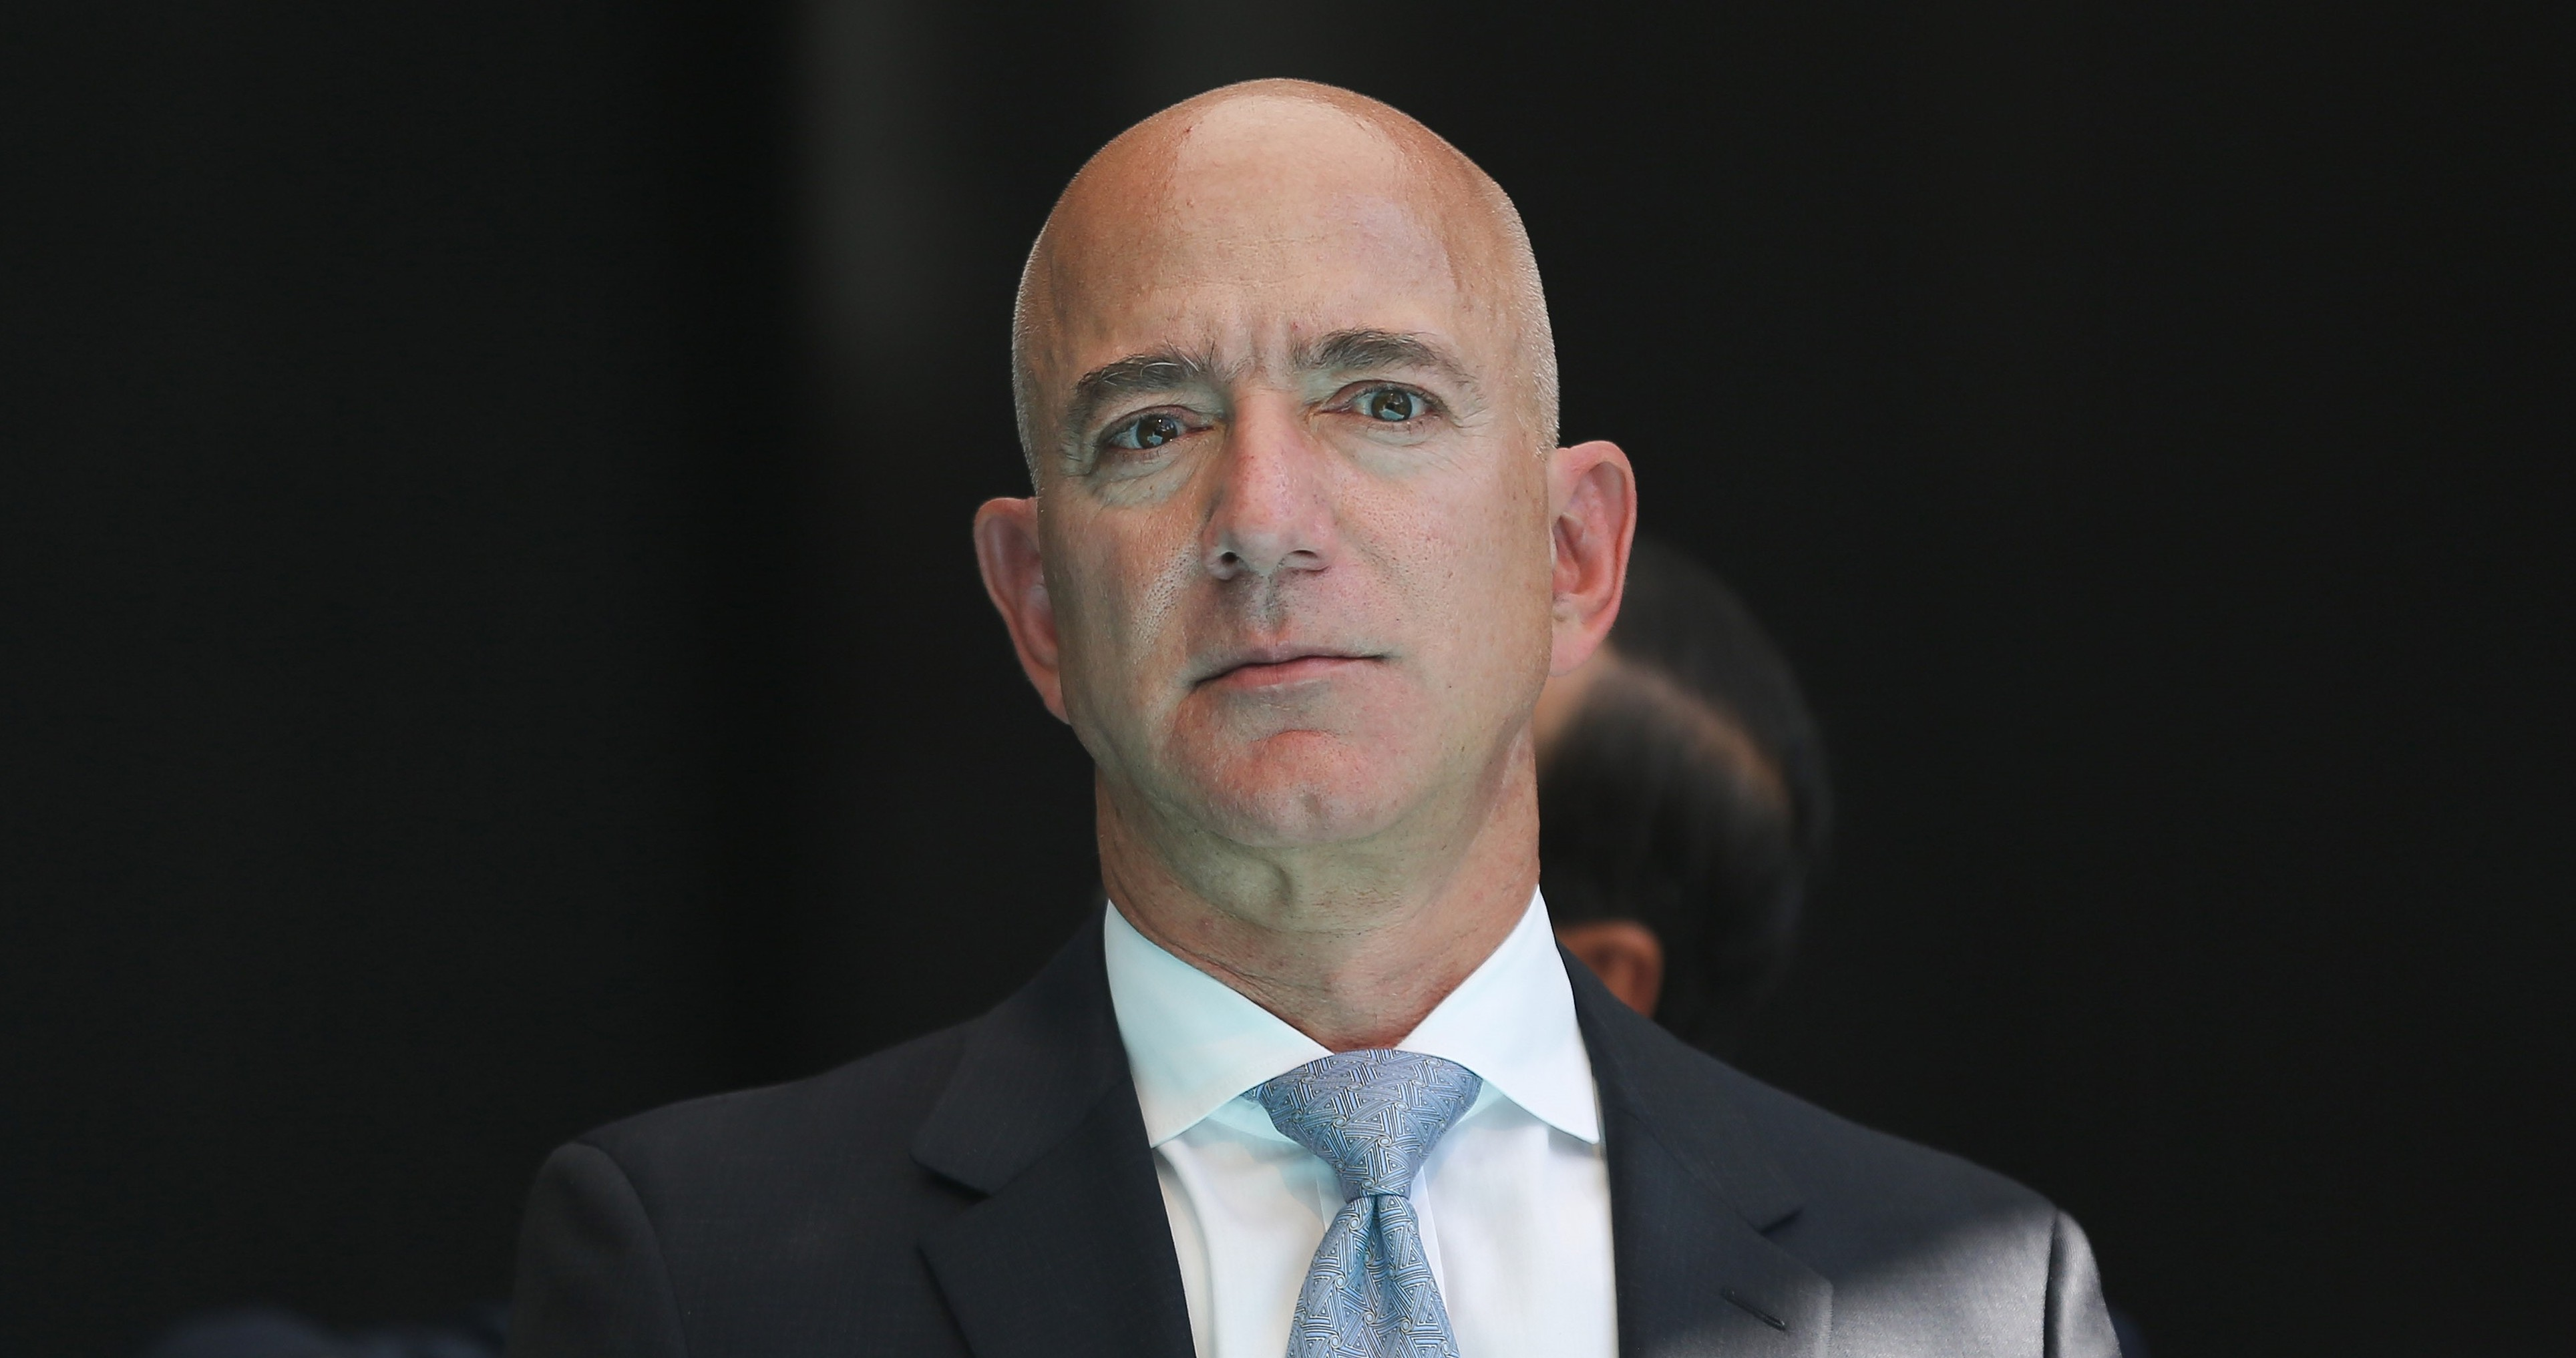 mashable.com - Chris Taylor - How Bezos became an asshole, and 7 other things we learned from 'Amazon Unbound